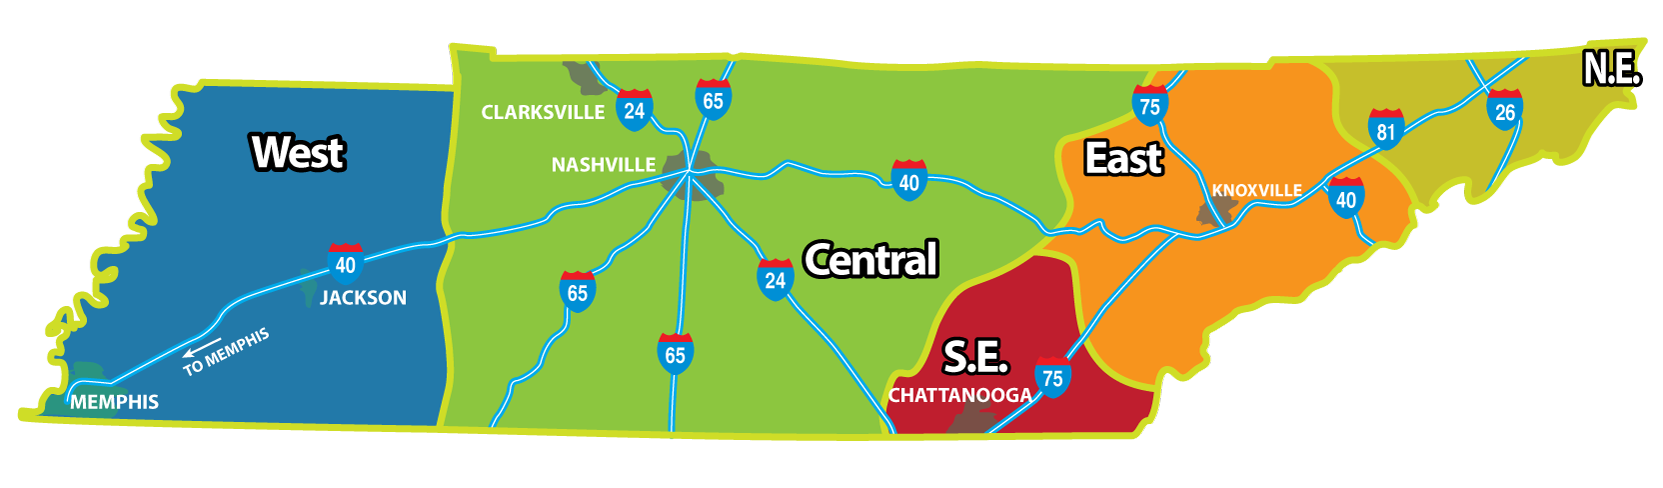 Tennessee RV Parks and Campgrounds | Camp in Tennessee